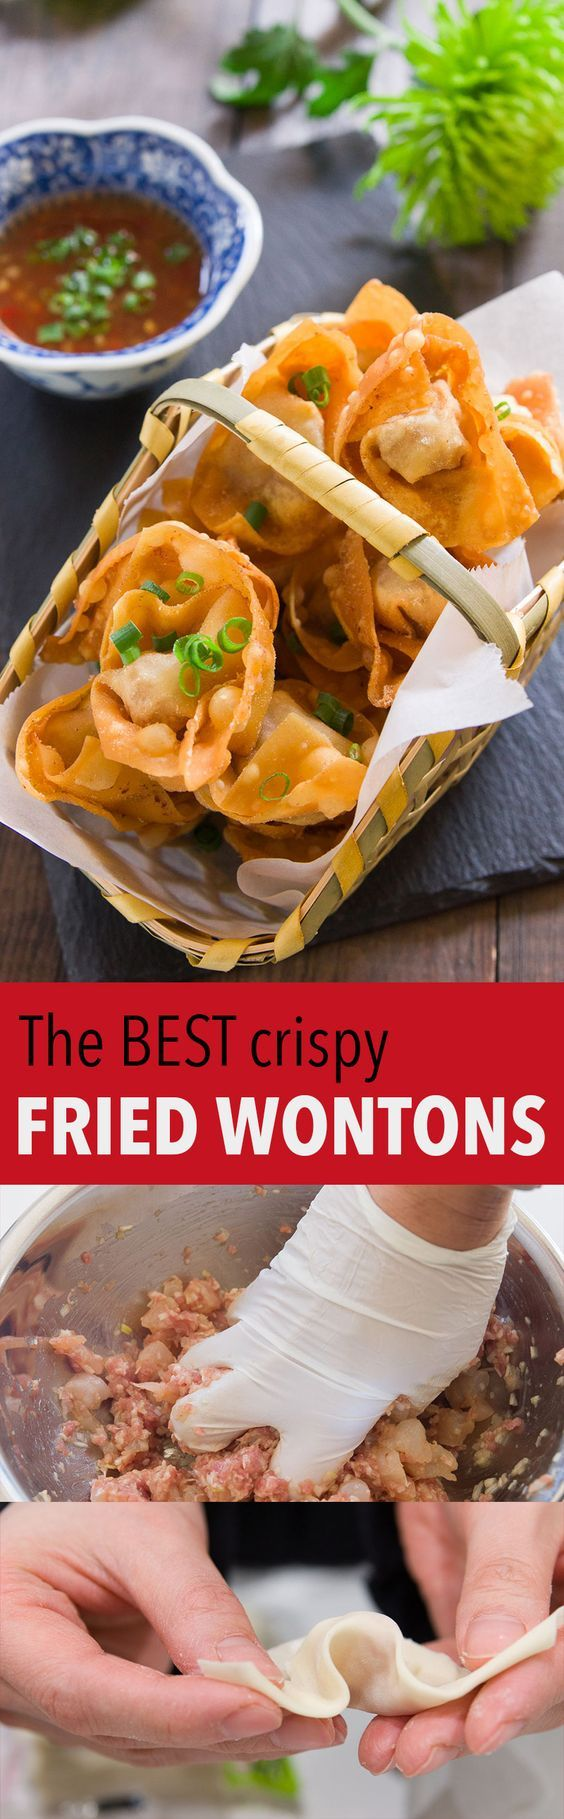 353 best food chinese images on pinterest asian recipes chinese fried wontons wonton recipeswonton sauce recipeappetizer recipesdrink recipeschinese food forumfinder Image collections